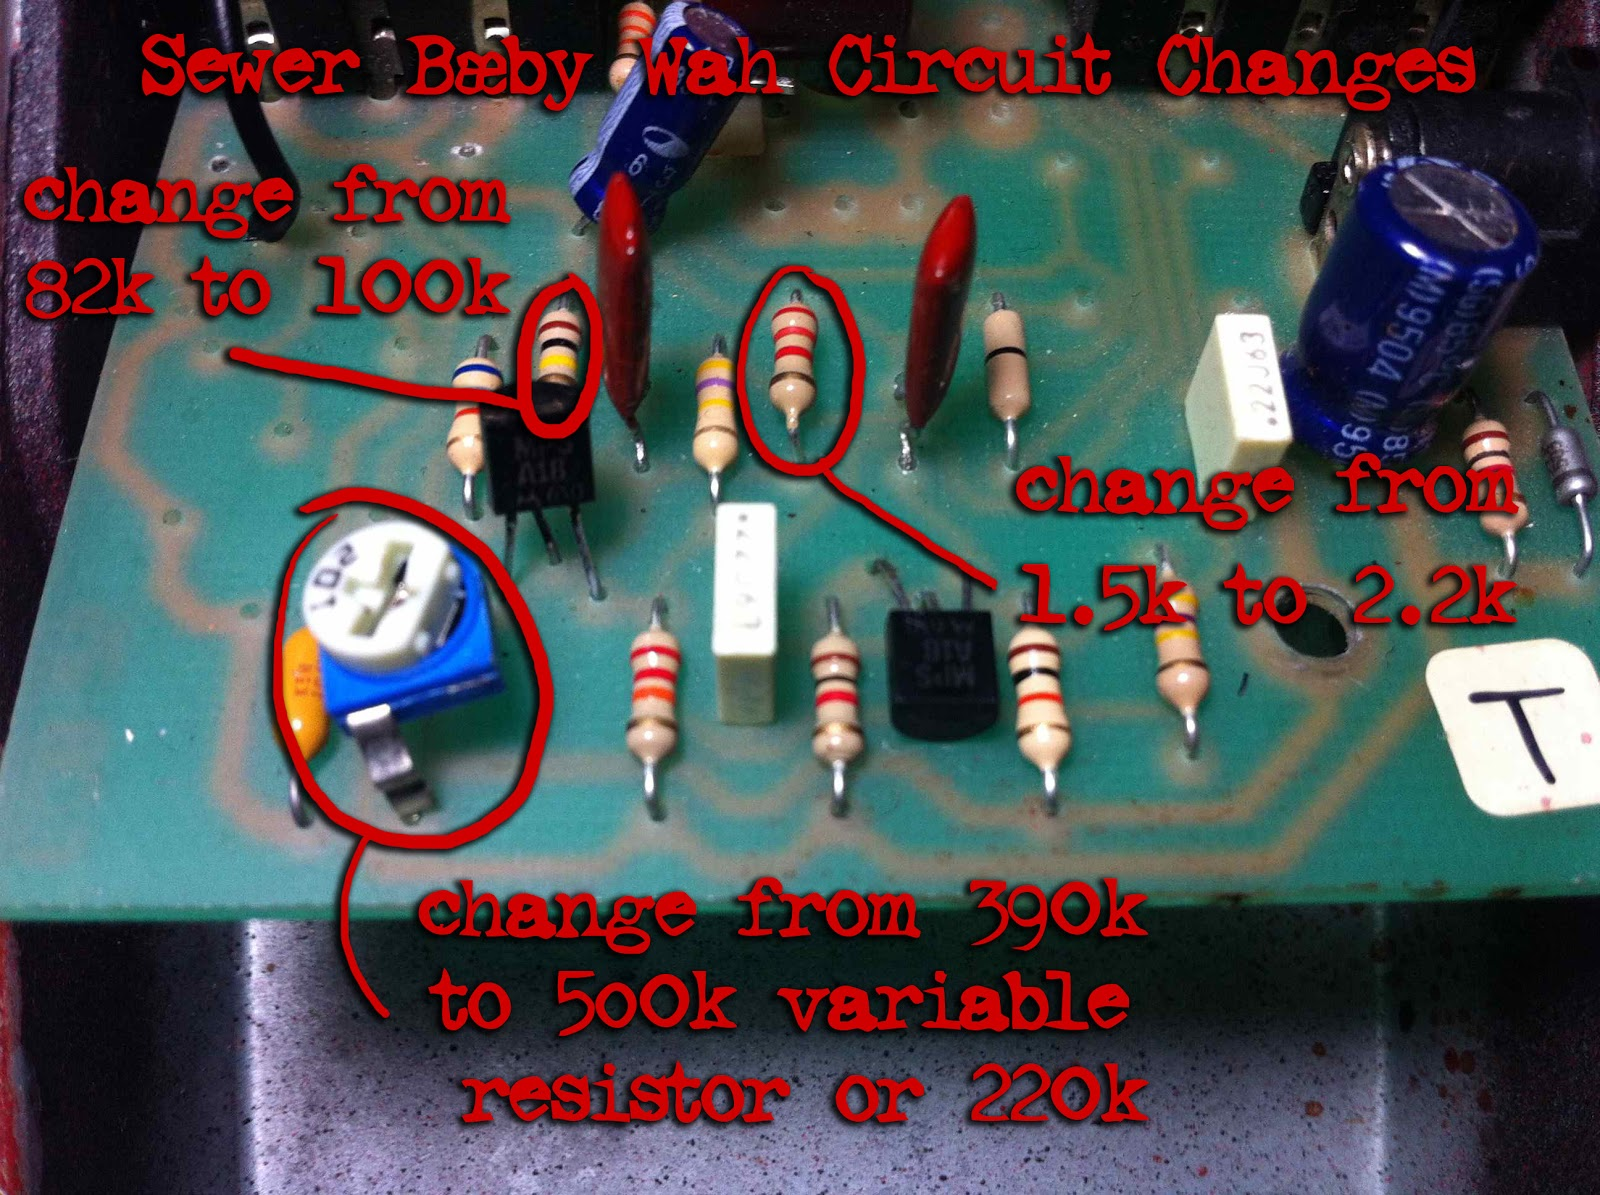 IMG_8309b sewer b�by part 2 gcb 95 crybaby mods doktor ross sewage crybaby gcb-95 wiring diagram at eliteediting.co